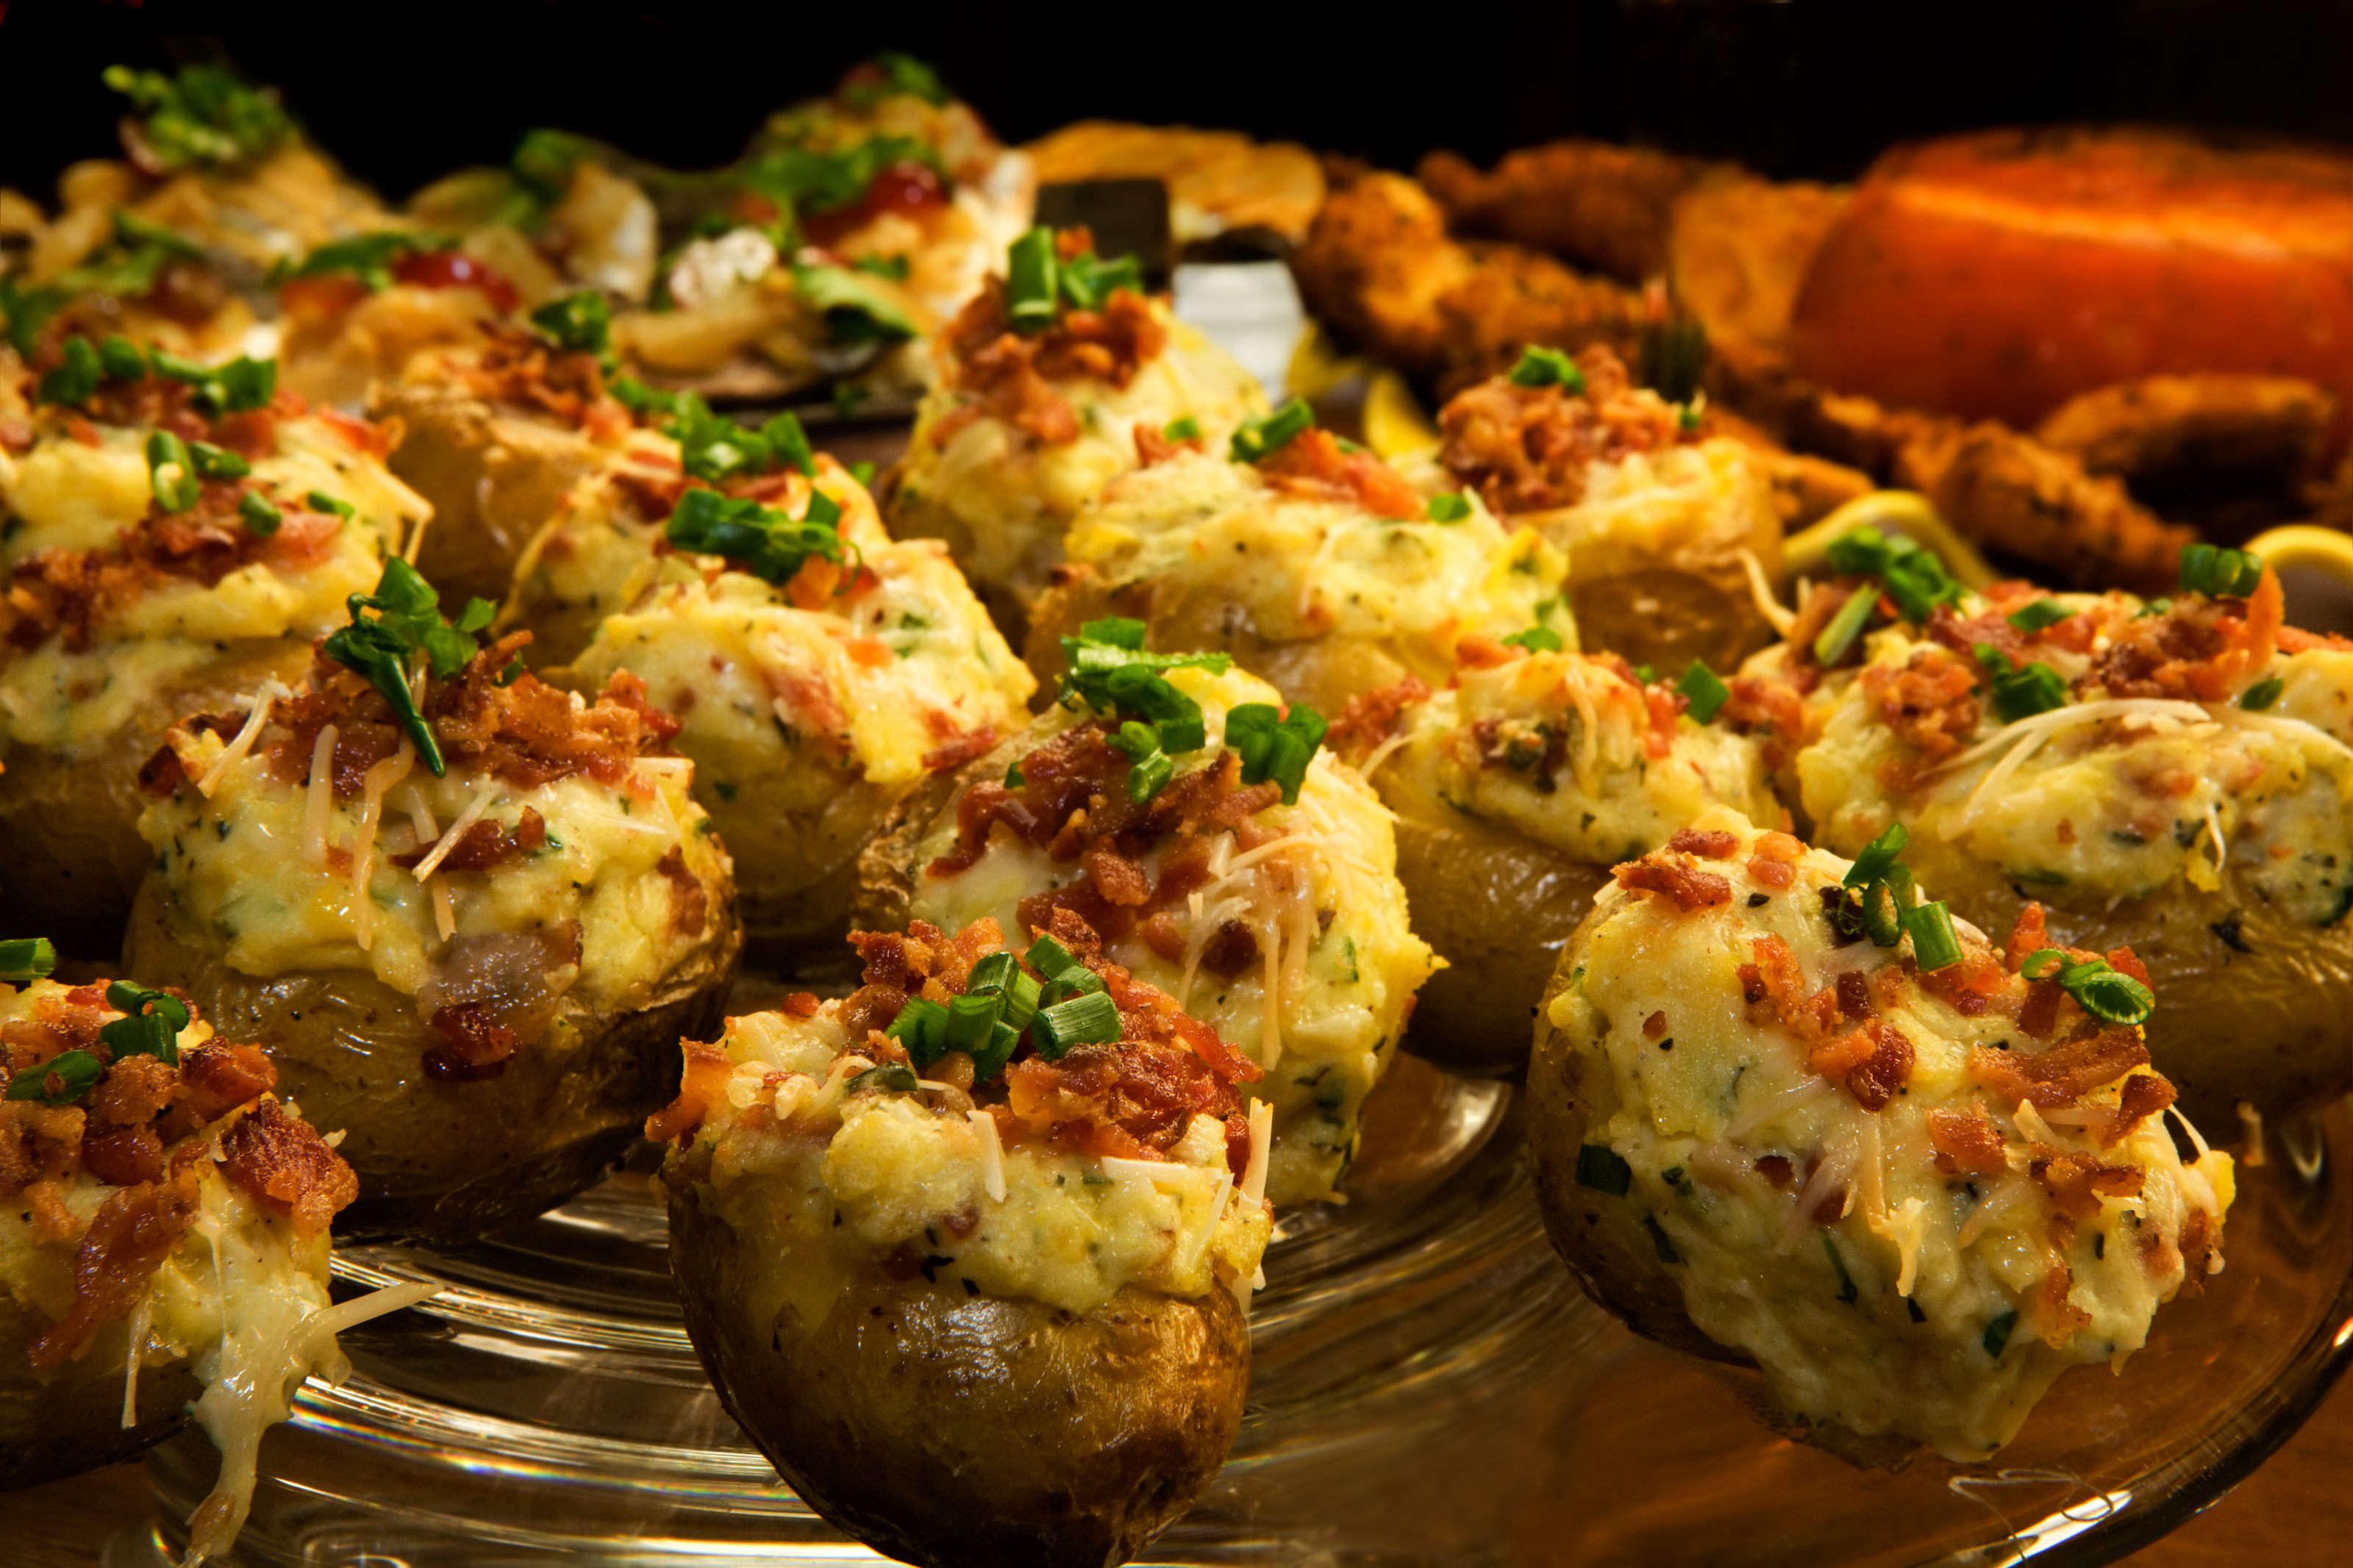 Loaded up with all sorts of goodies, twice-baked potatoes make for a ...